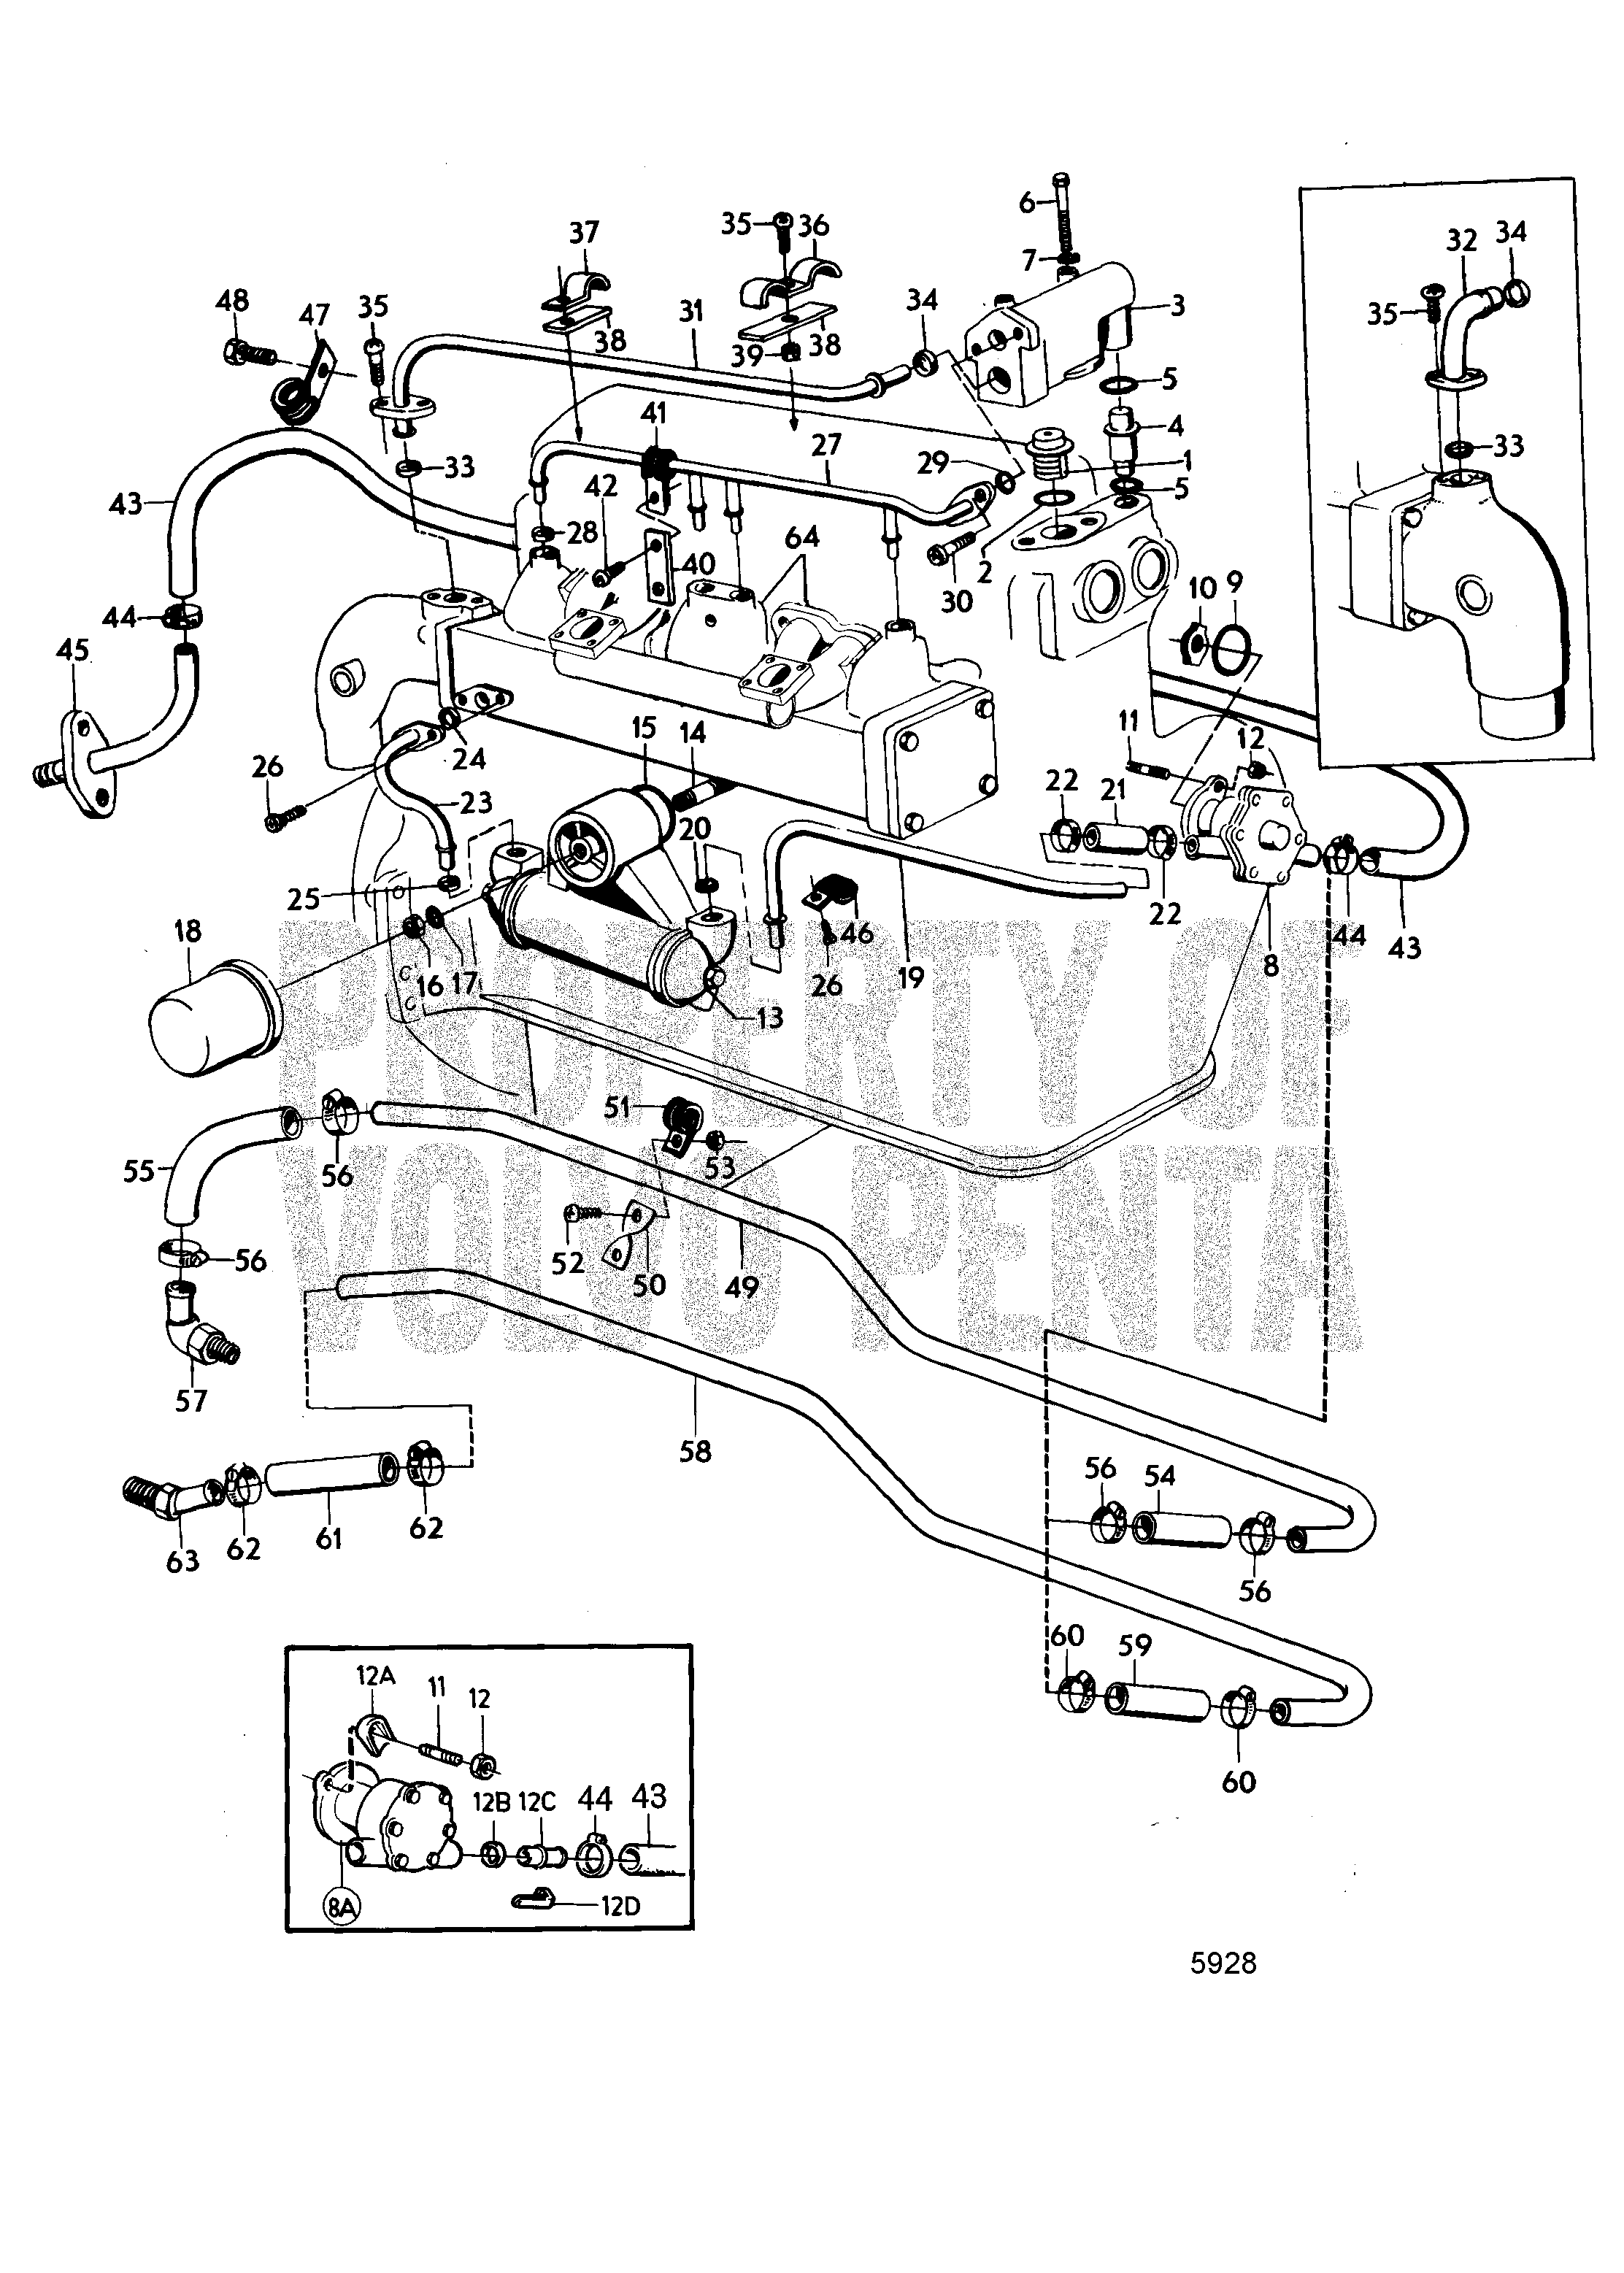 B20 Engine | Wiring Diagram Database on kubota b2100 wiring diagram, kubota l3650 wiring diagram, kubota l3600 wiring diagram, kubota l4200 wiring diagram, kubota b6200 wiring diagram, kubota l5740 wiring diagram, kubota l2900 wiring diagram, kubota b7300 wiring diagram, kubota m6800 wiring diagram, kubota b21 wiring diagram, kubota b1750 wiring diagram, kubota m8200 wiring diagram, kubota l2350 wiring diagram, kubota b26 wiring diagram, kubota l245dt wiring diagram,